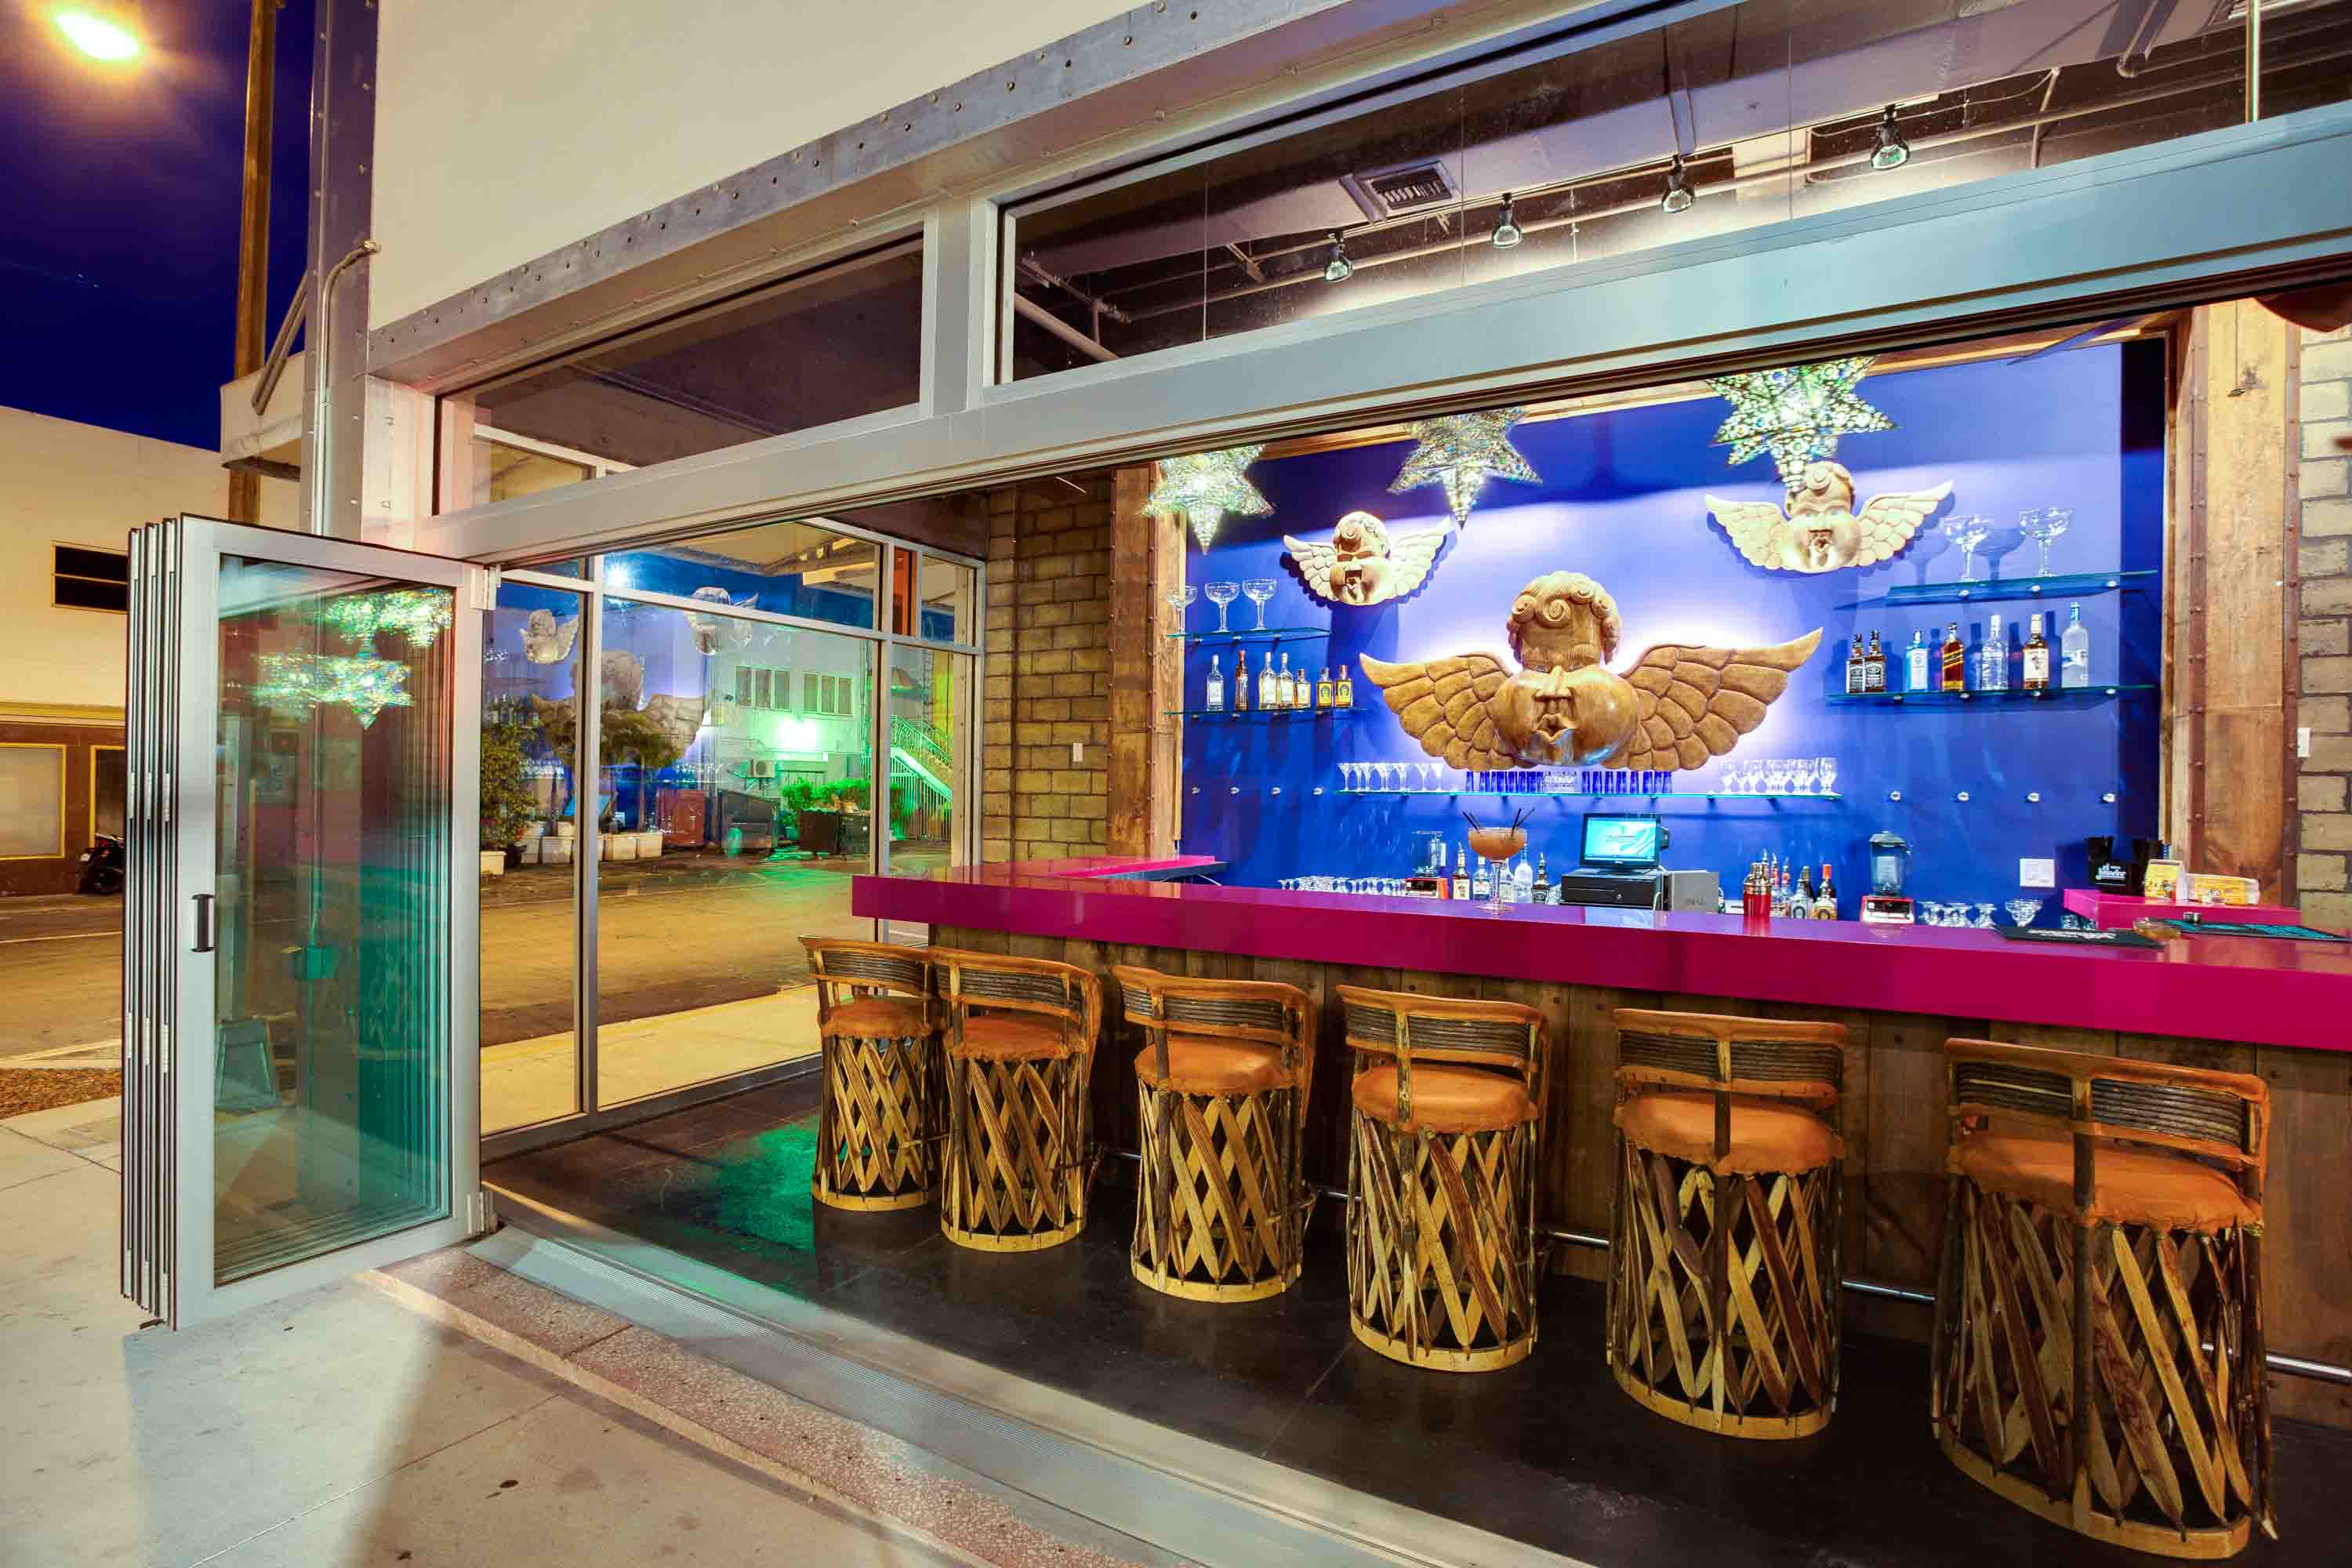 Miami Beach Tequila and Tacos bar in an South Beach Alley